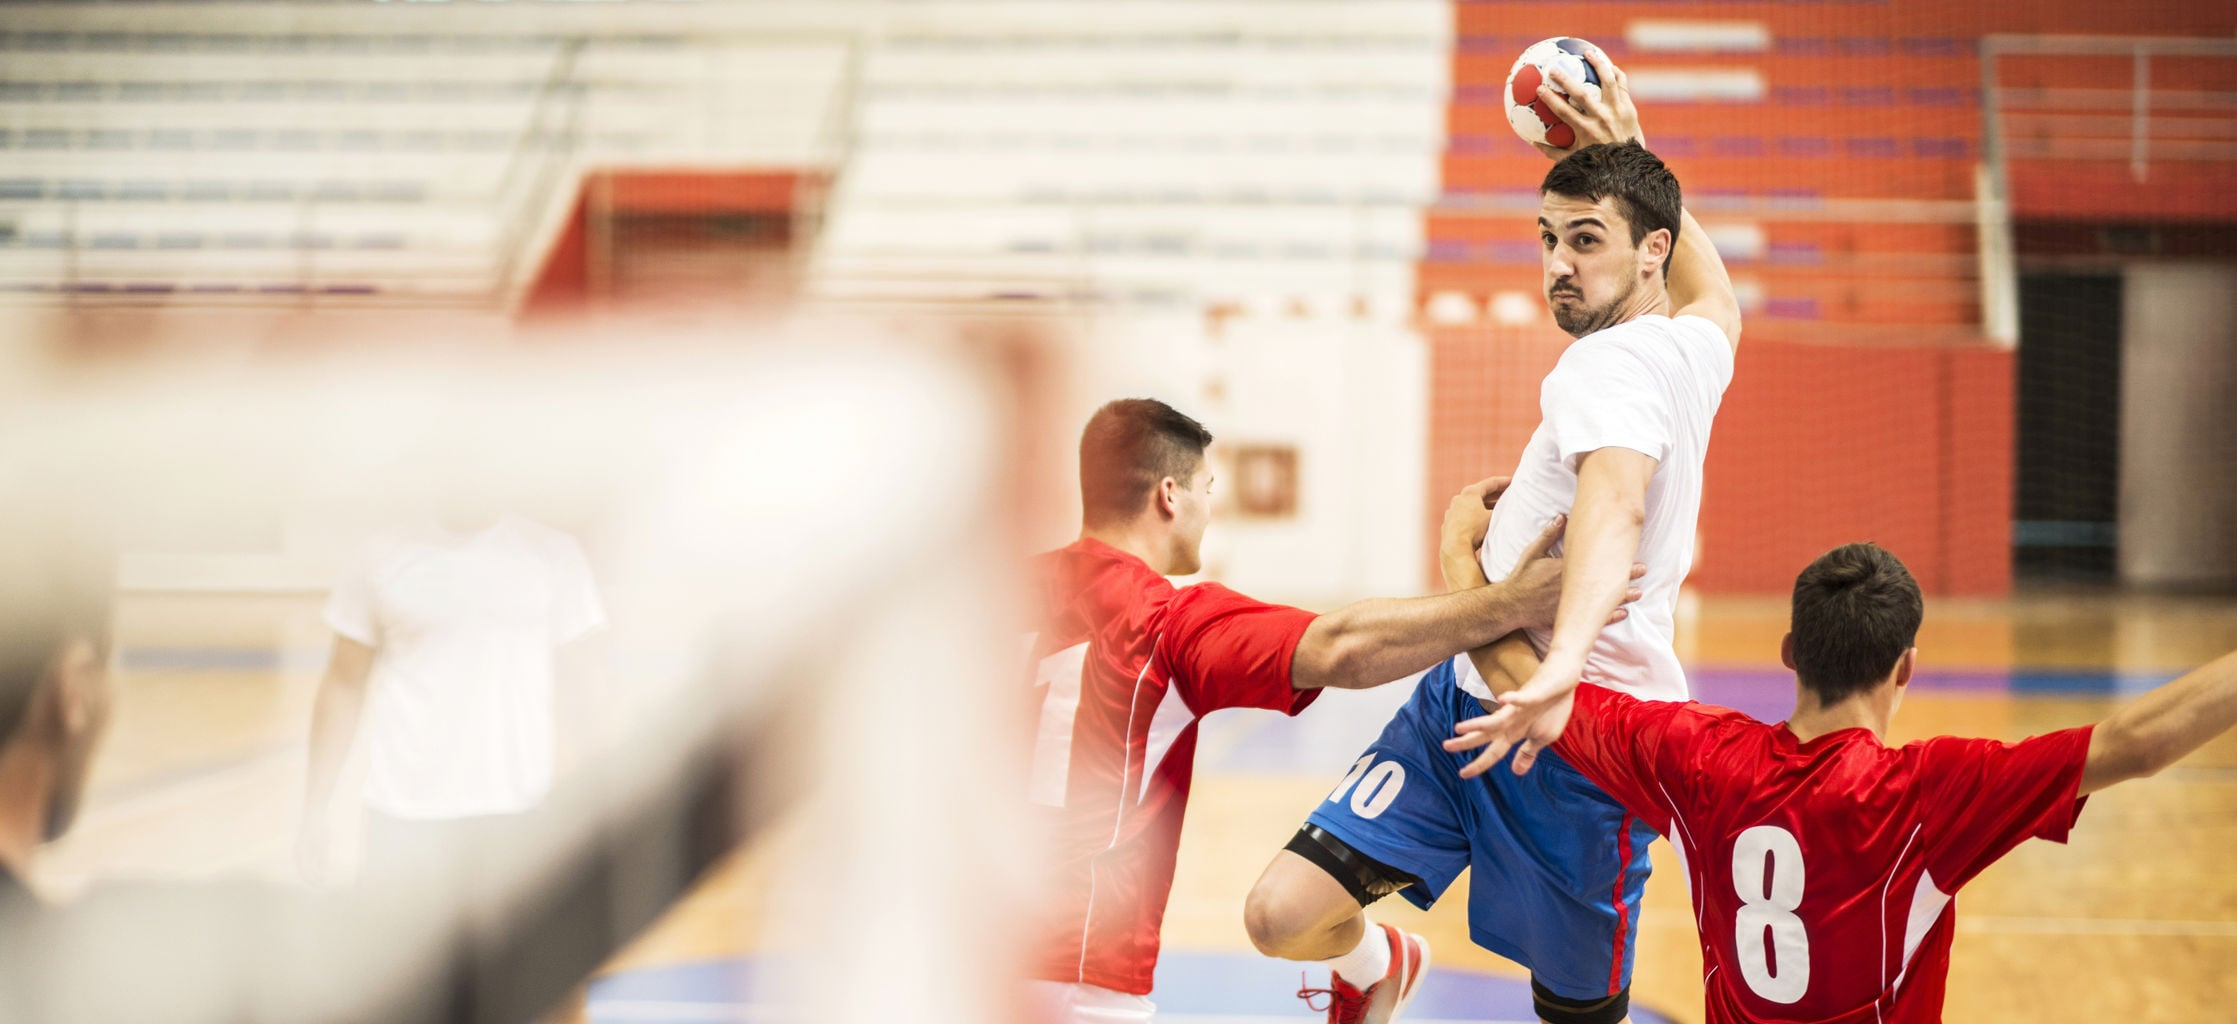 Entente Sucs Et Velay Senior F — Uodl Handball Senior F